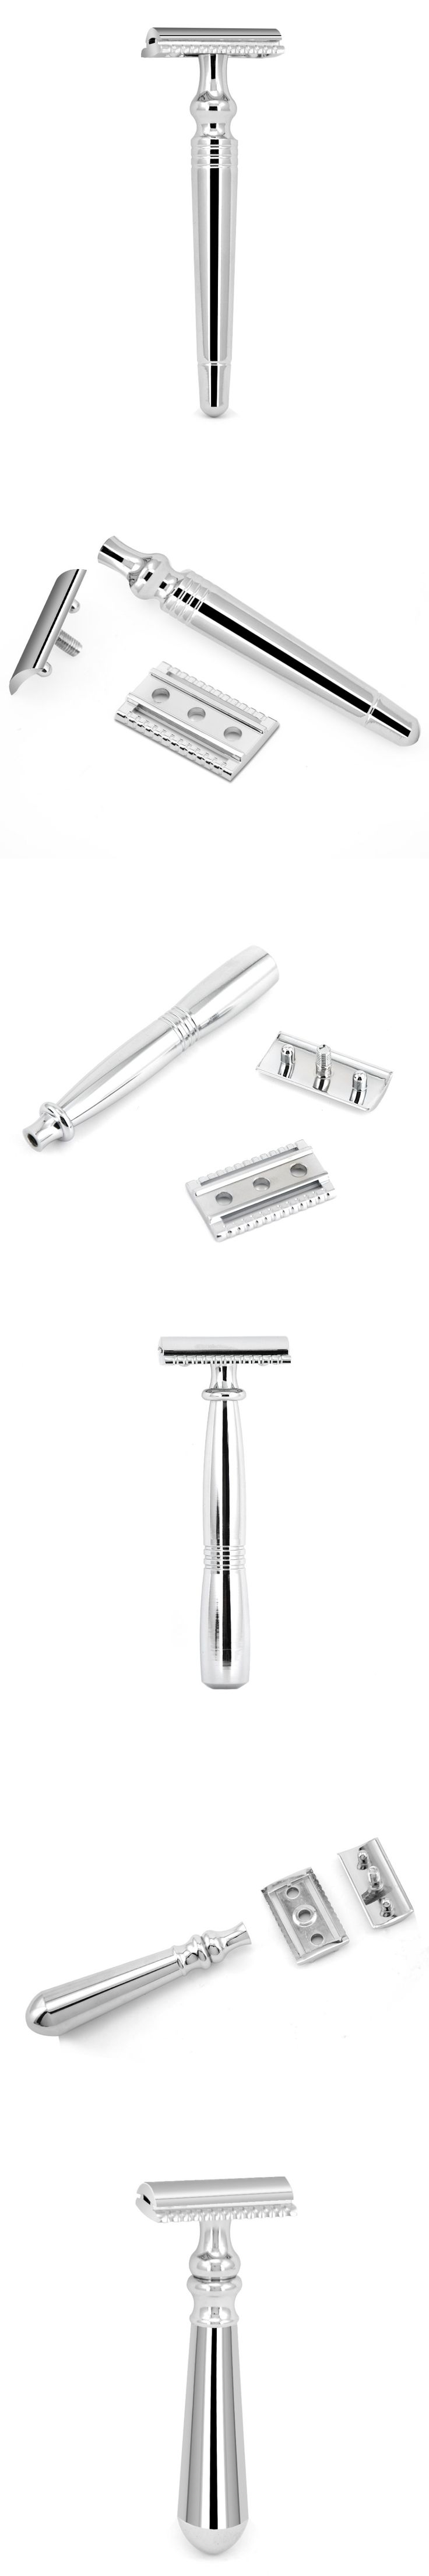 ZY Classic Double Edge Safety Razor Manual Shave Beard Shaver For Men Shaving + 10 Free Blade Best Gfit